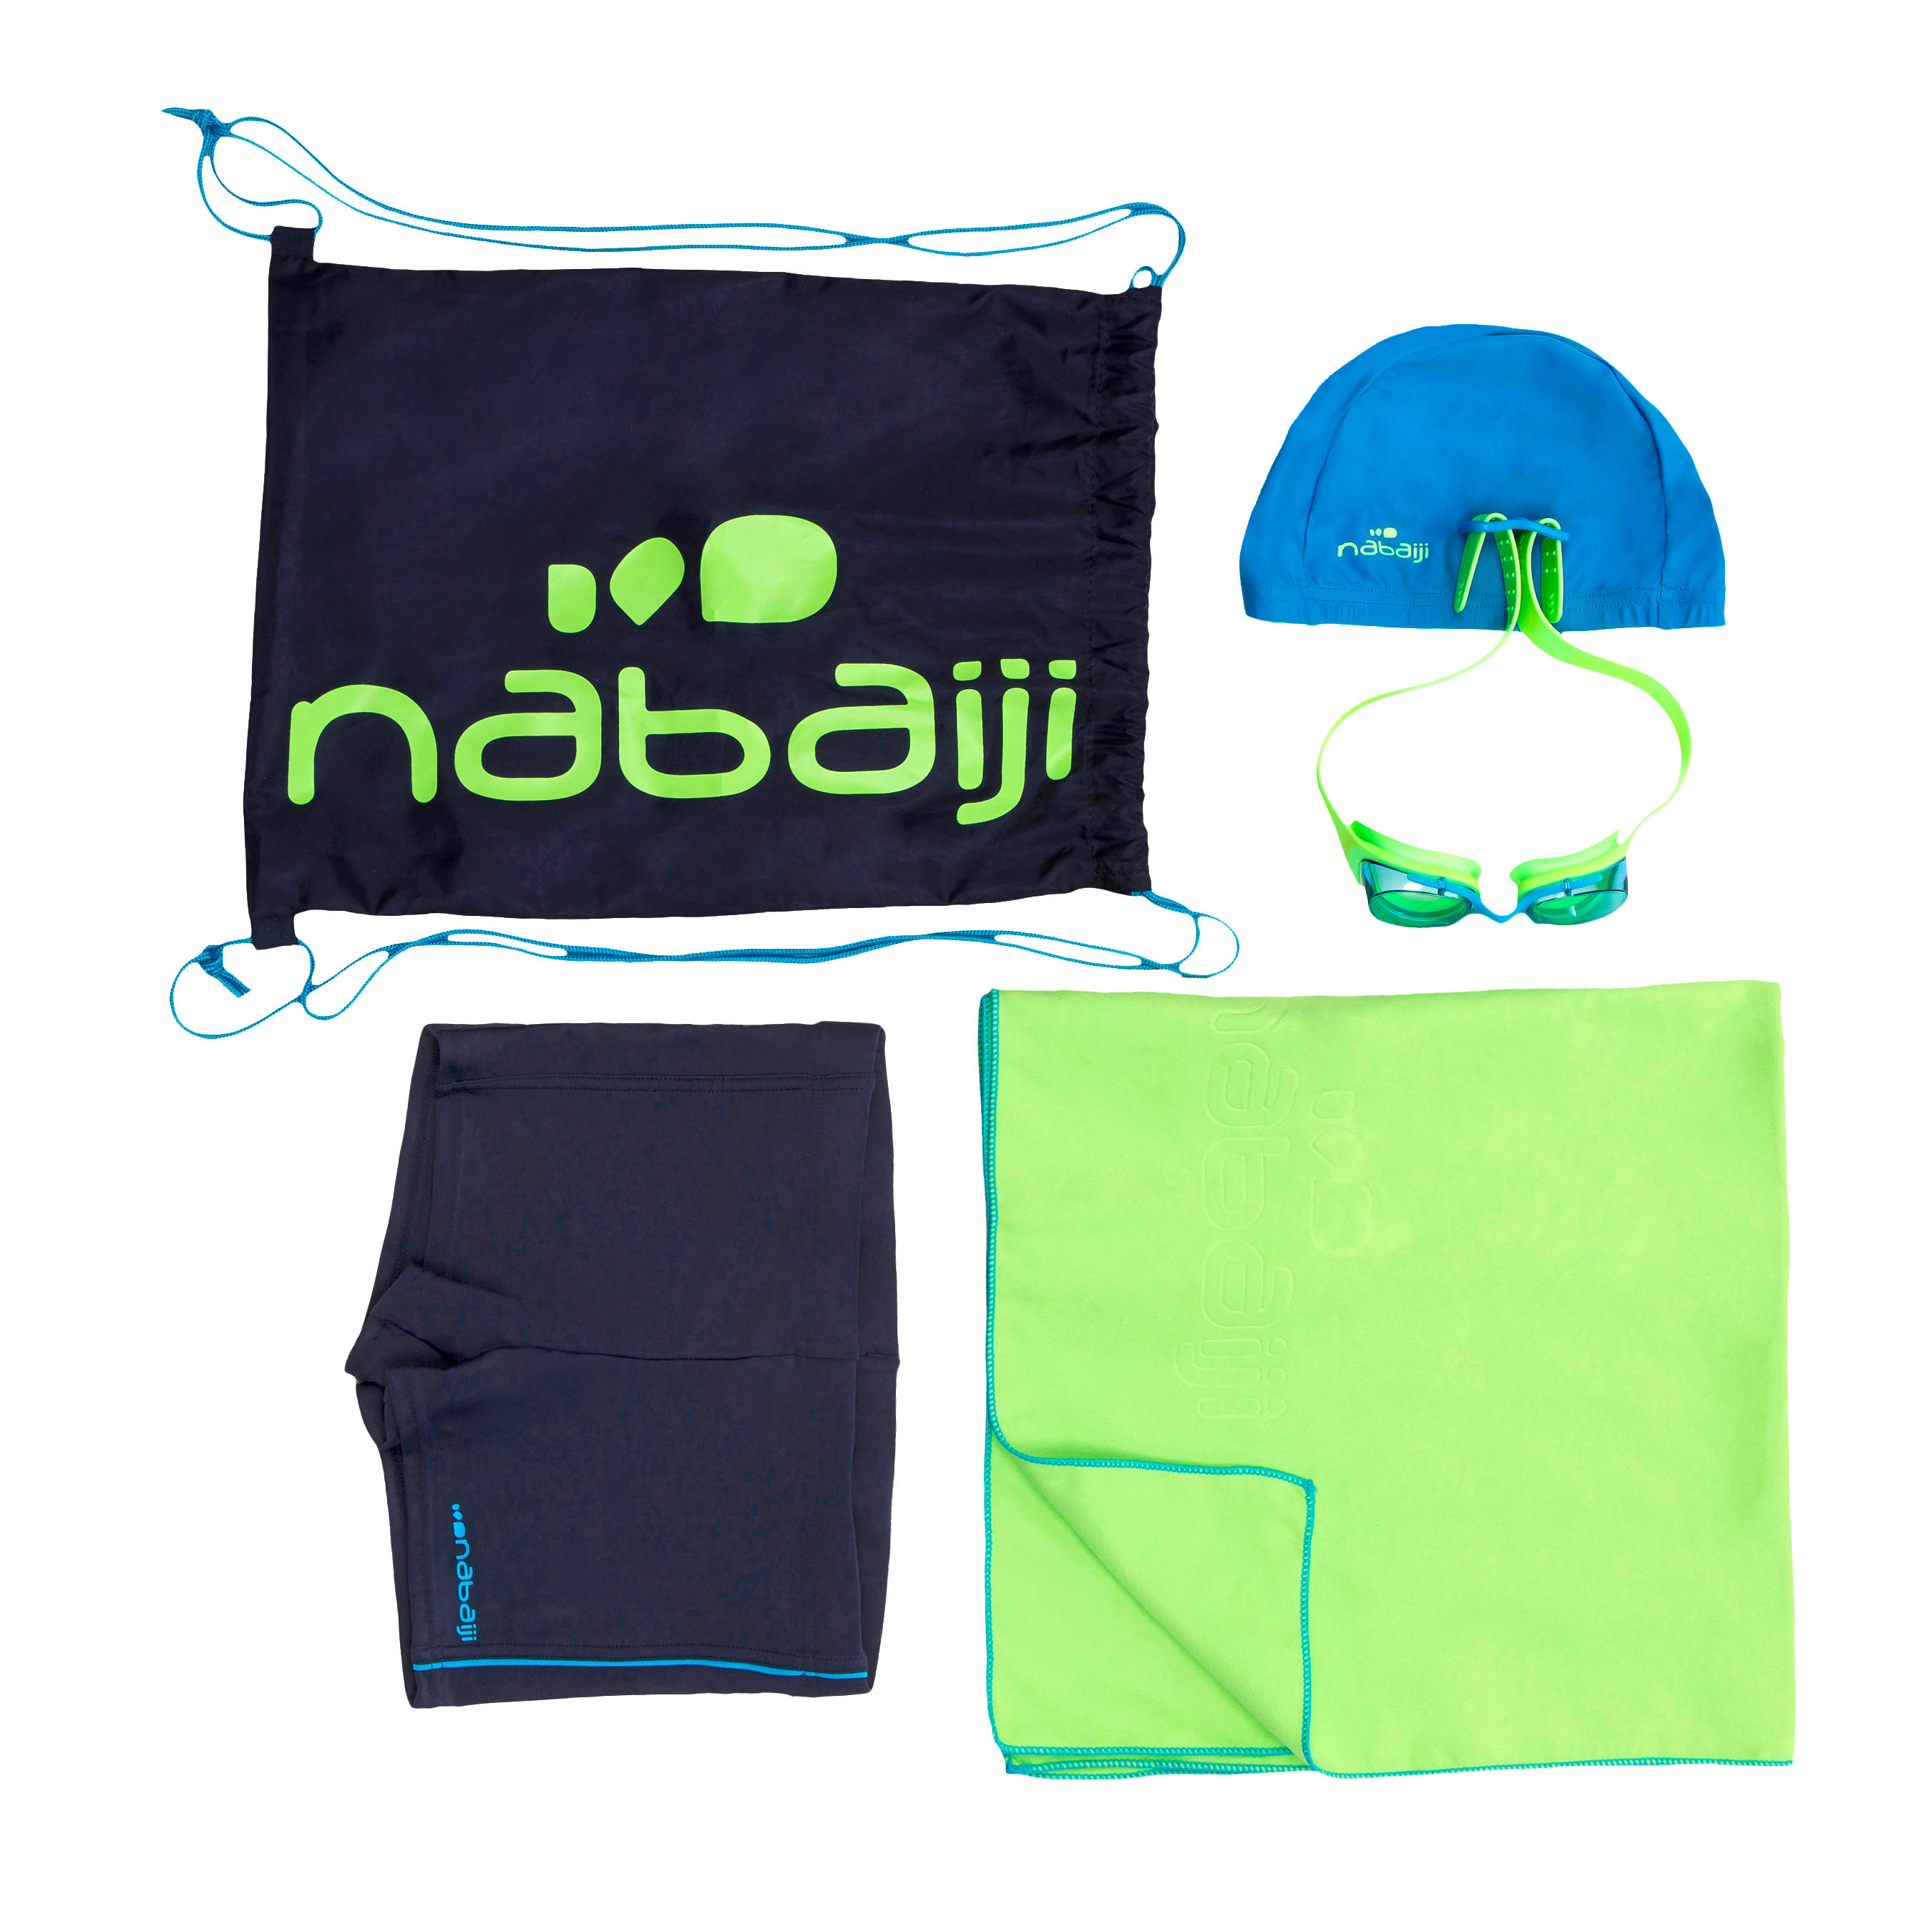 Nabaiji maillot de bain lunettes de natation serviette for Costumi piscina decathlon